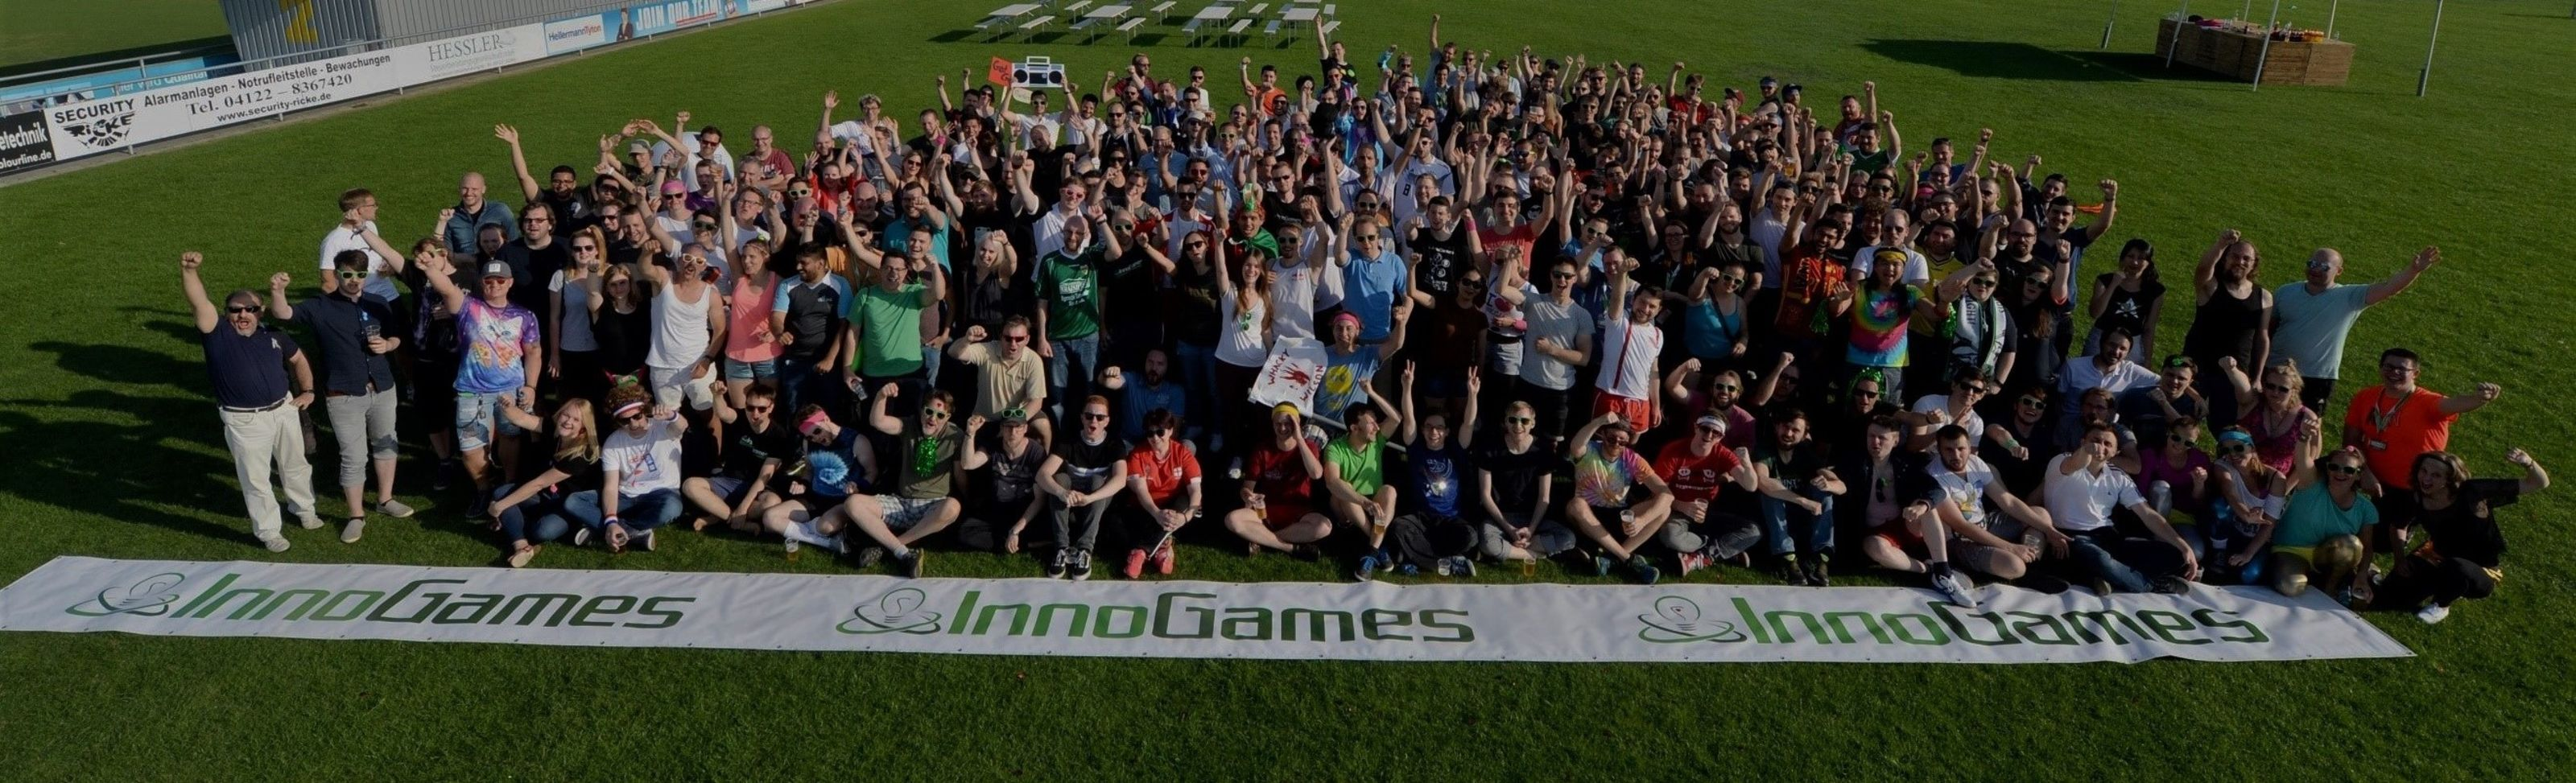 InnoGames Careers | InnoGames Careers and open positions